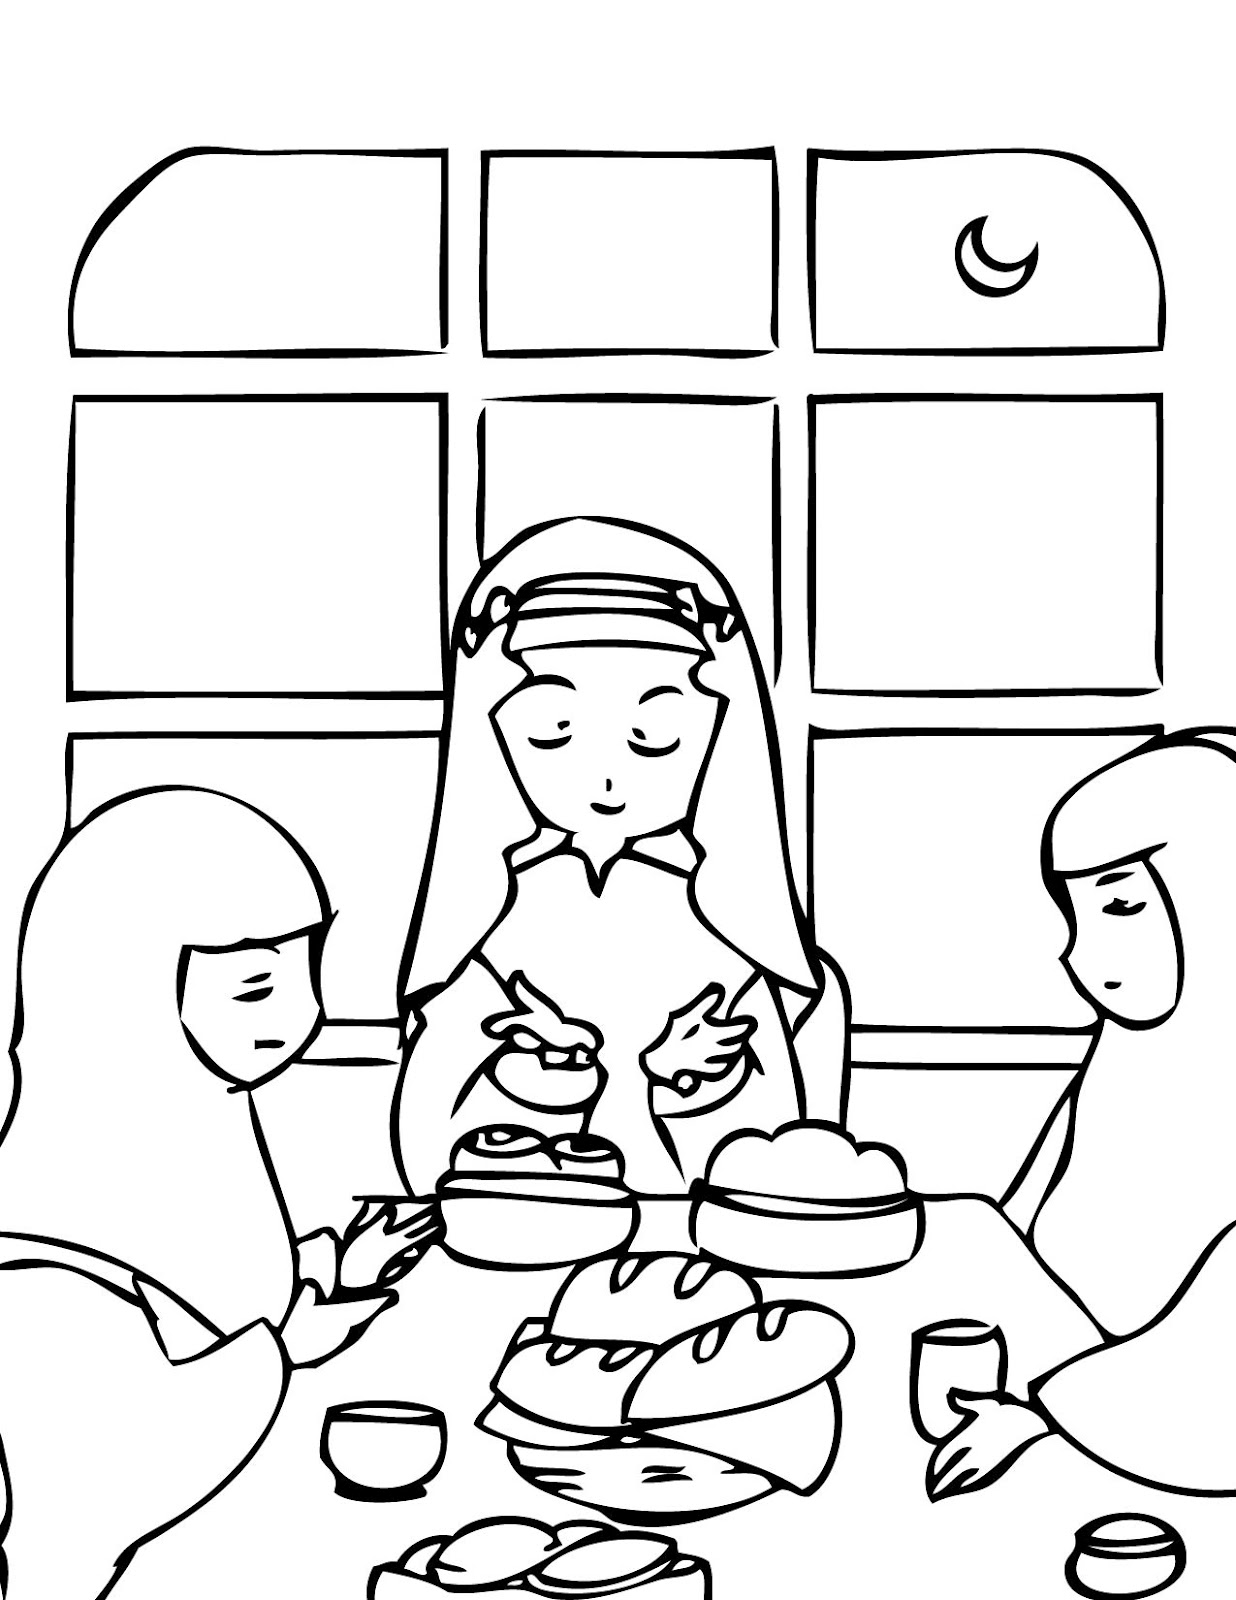 Eid colouring in sheets - Ramadhan Ifthar